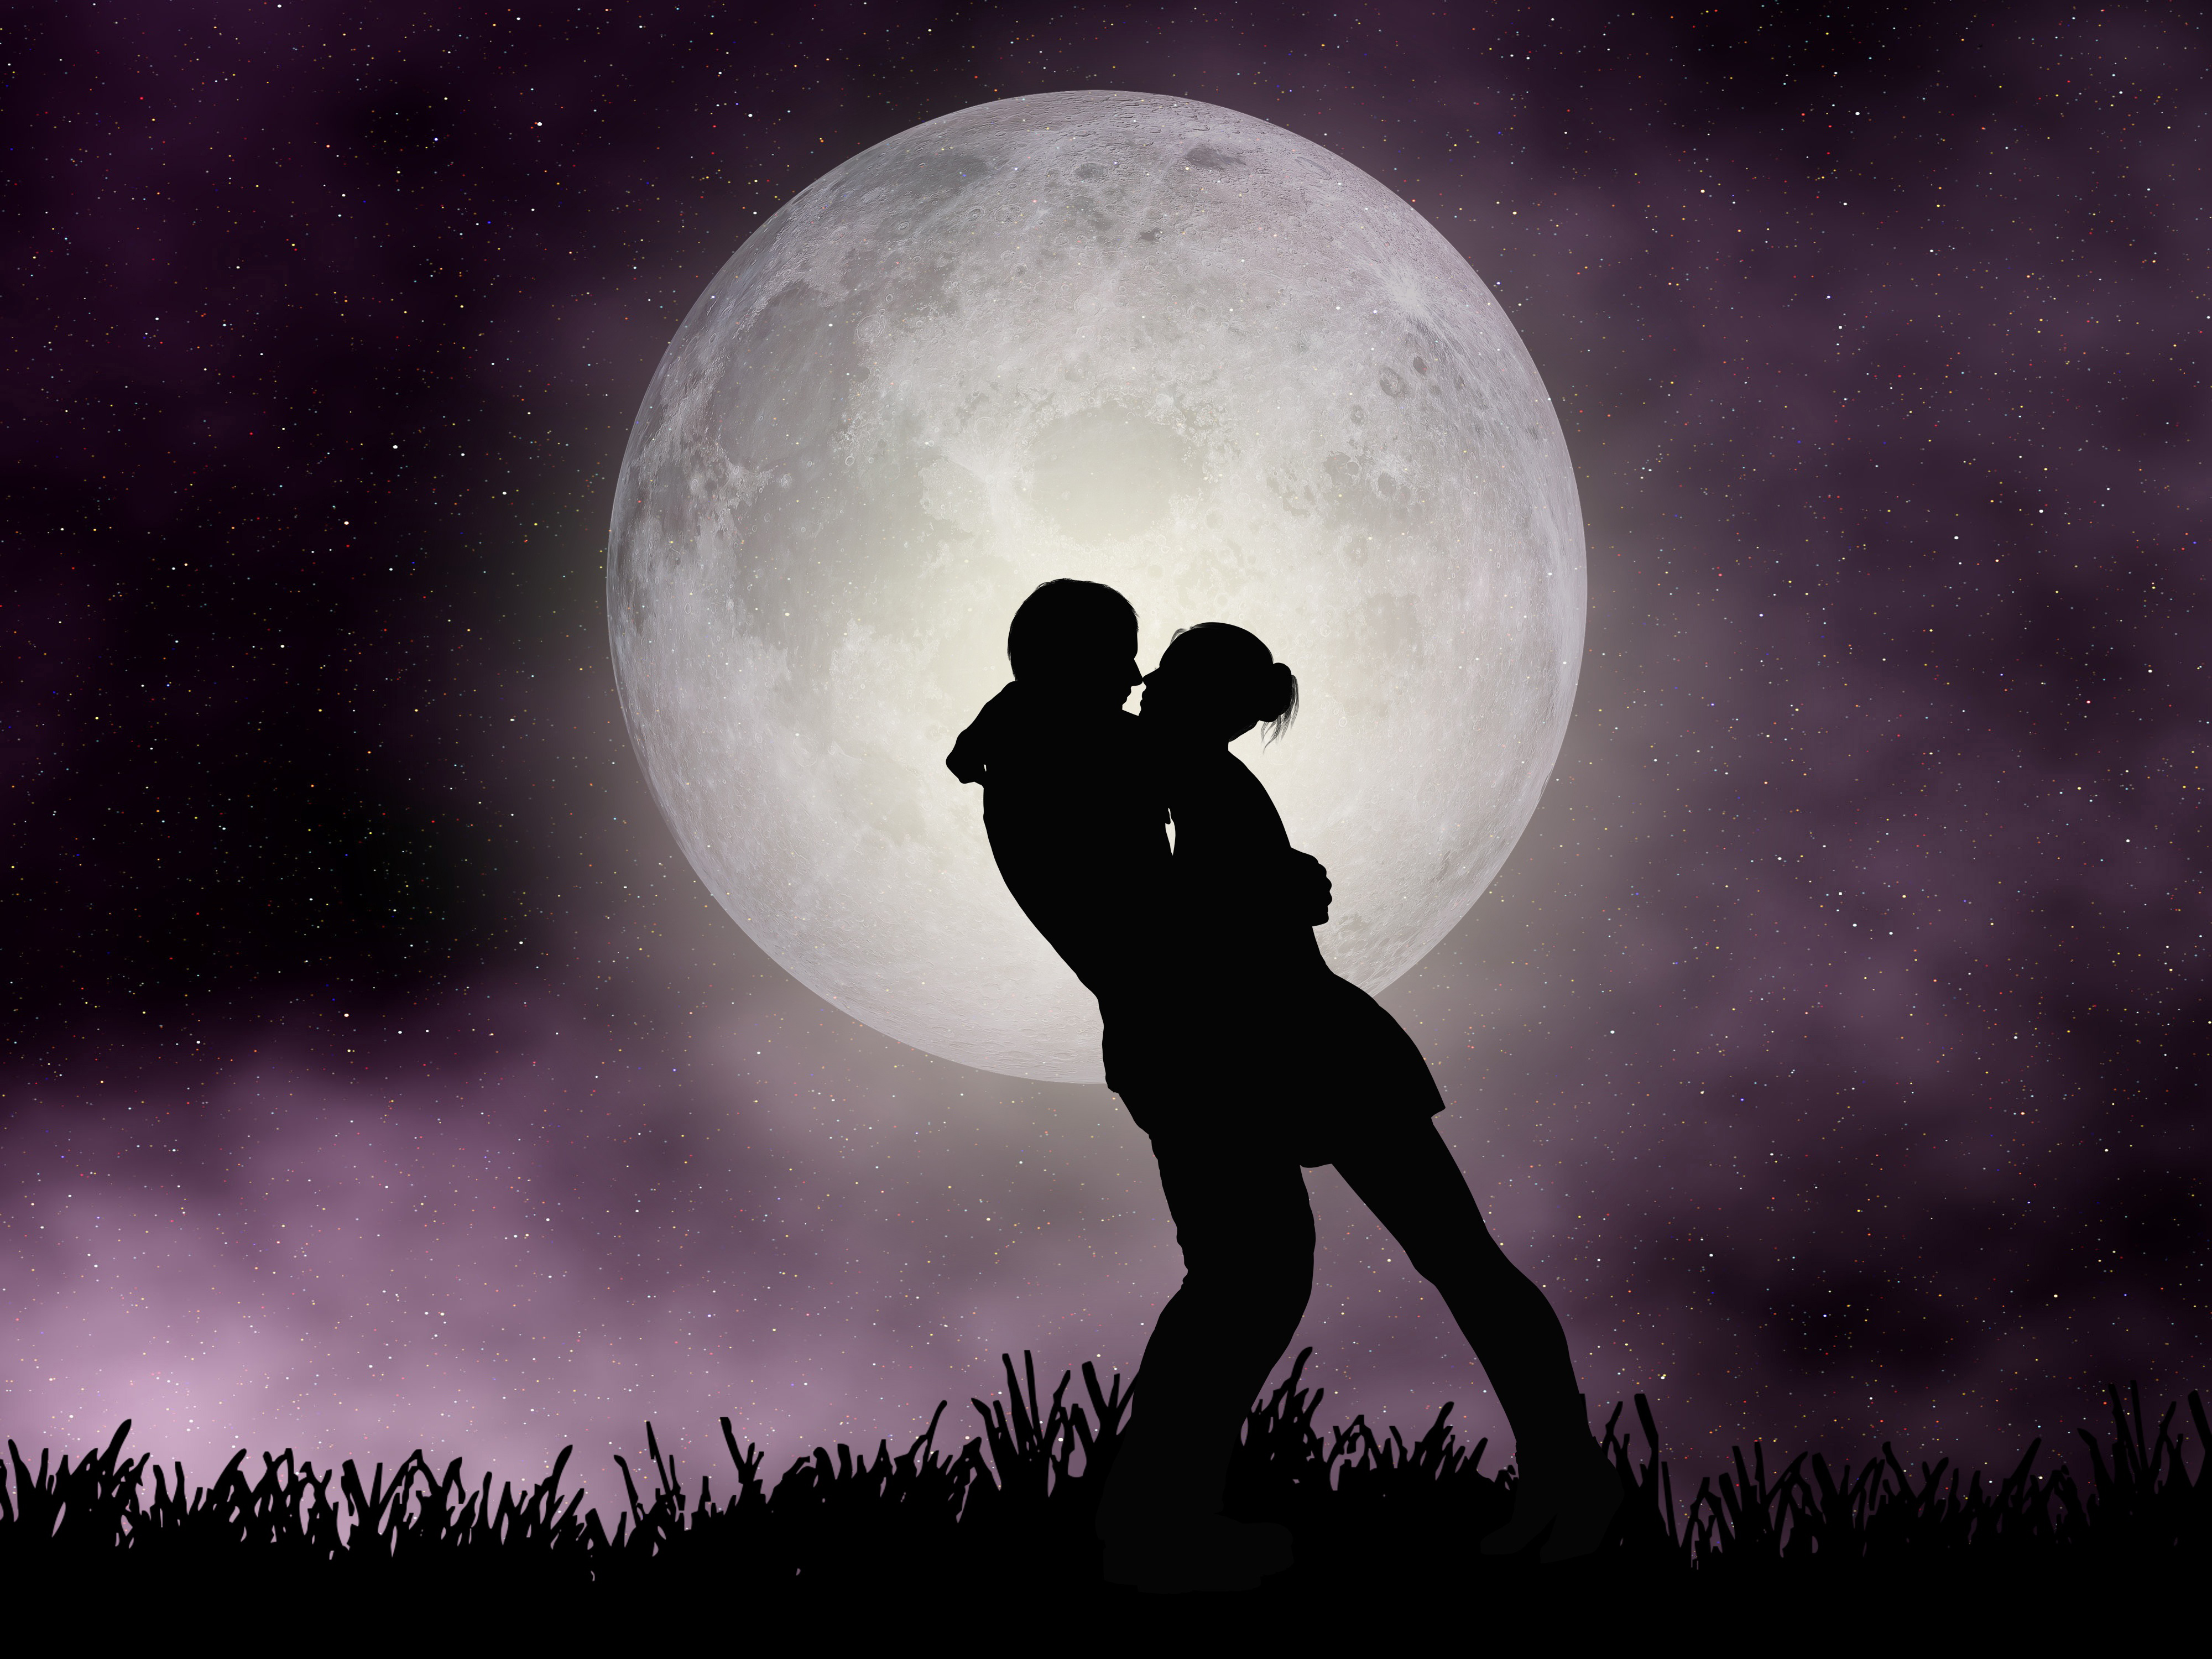 couple, moon, lover, lovely, romantic night, hug